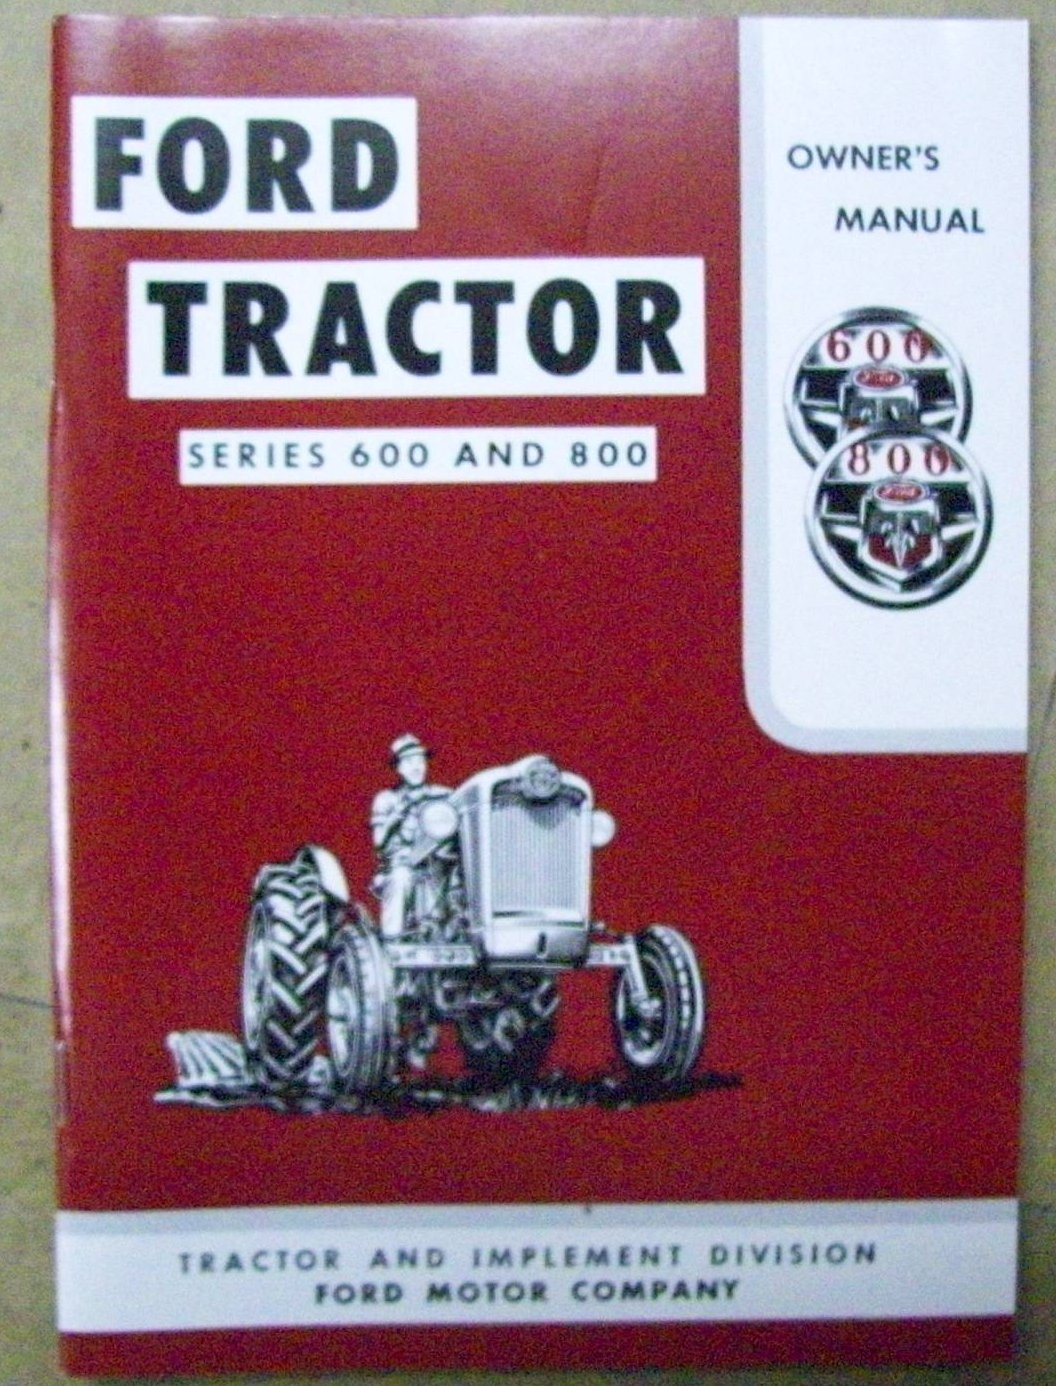 Operator's Manual Ford 600, 800 larger image